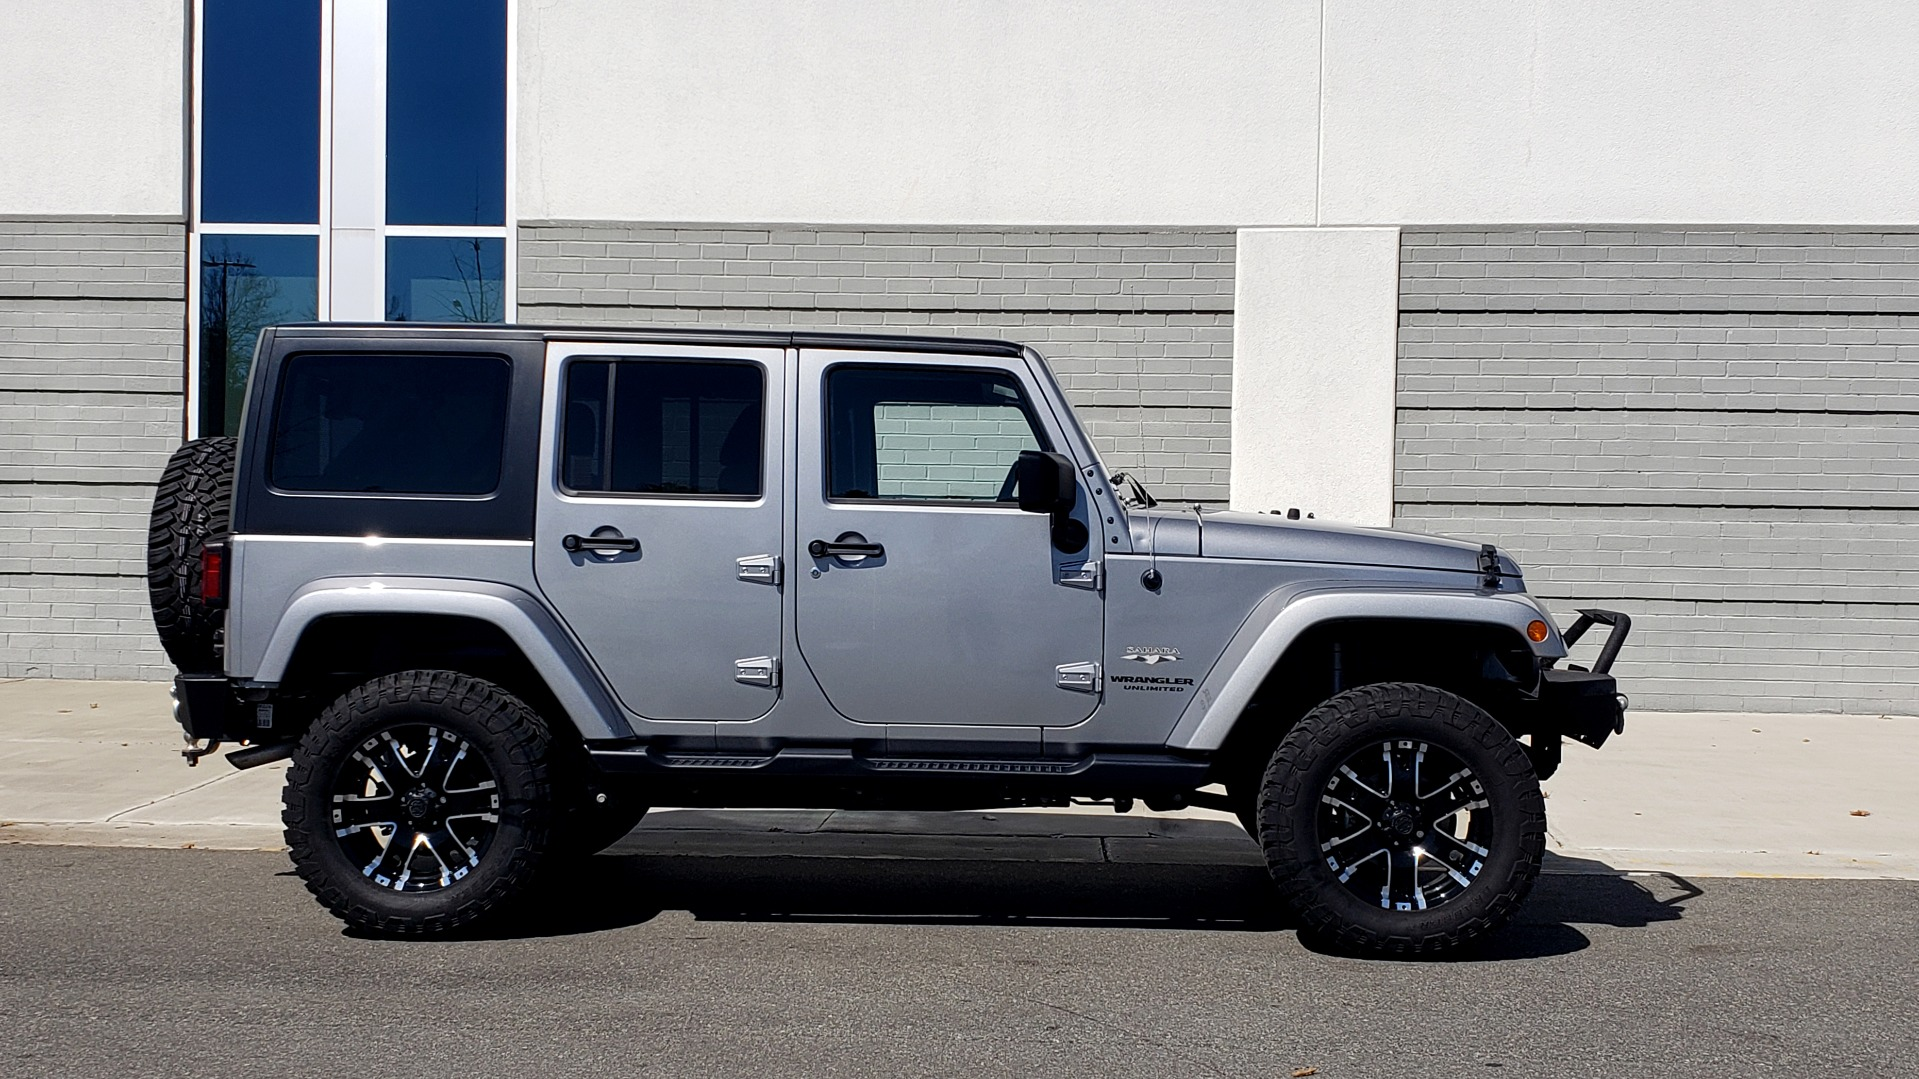 Used 2017 Jeep WRANGLER UNLIMITED SAHARA 4X4 / 3-PC FREEDOM TOP / 3.6L V6 / 5-SPD AUTO for sale Sold at Formula Imports in Charlotte NC 28227 10